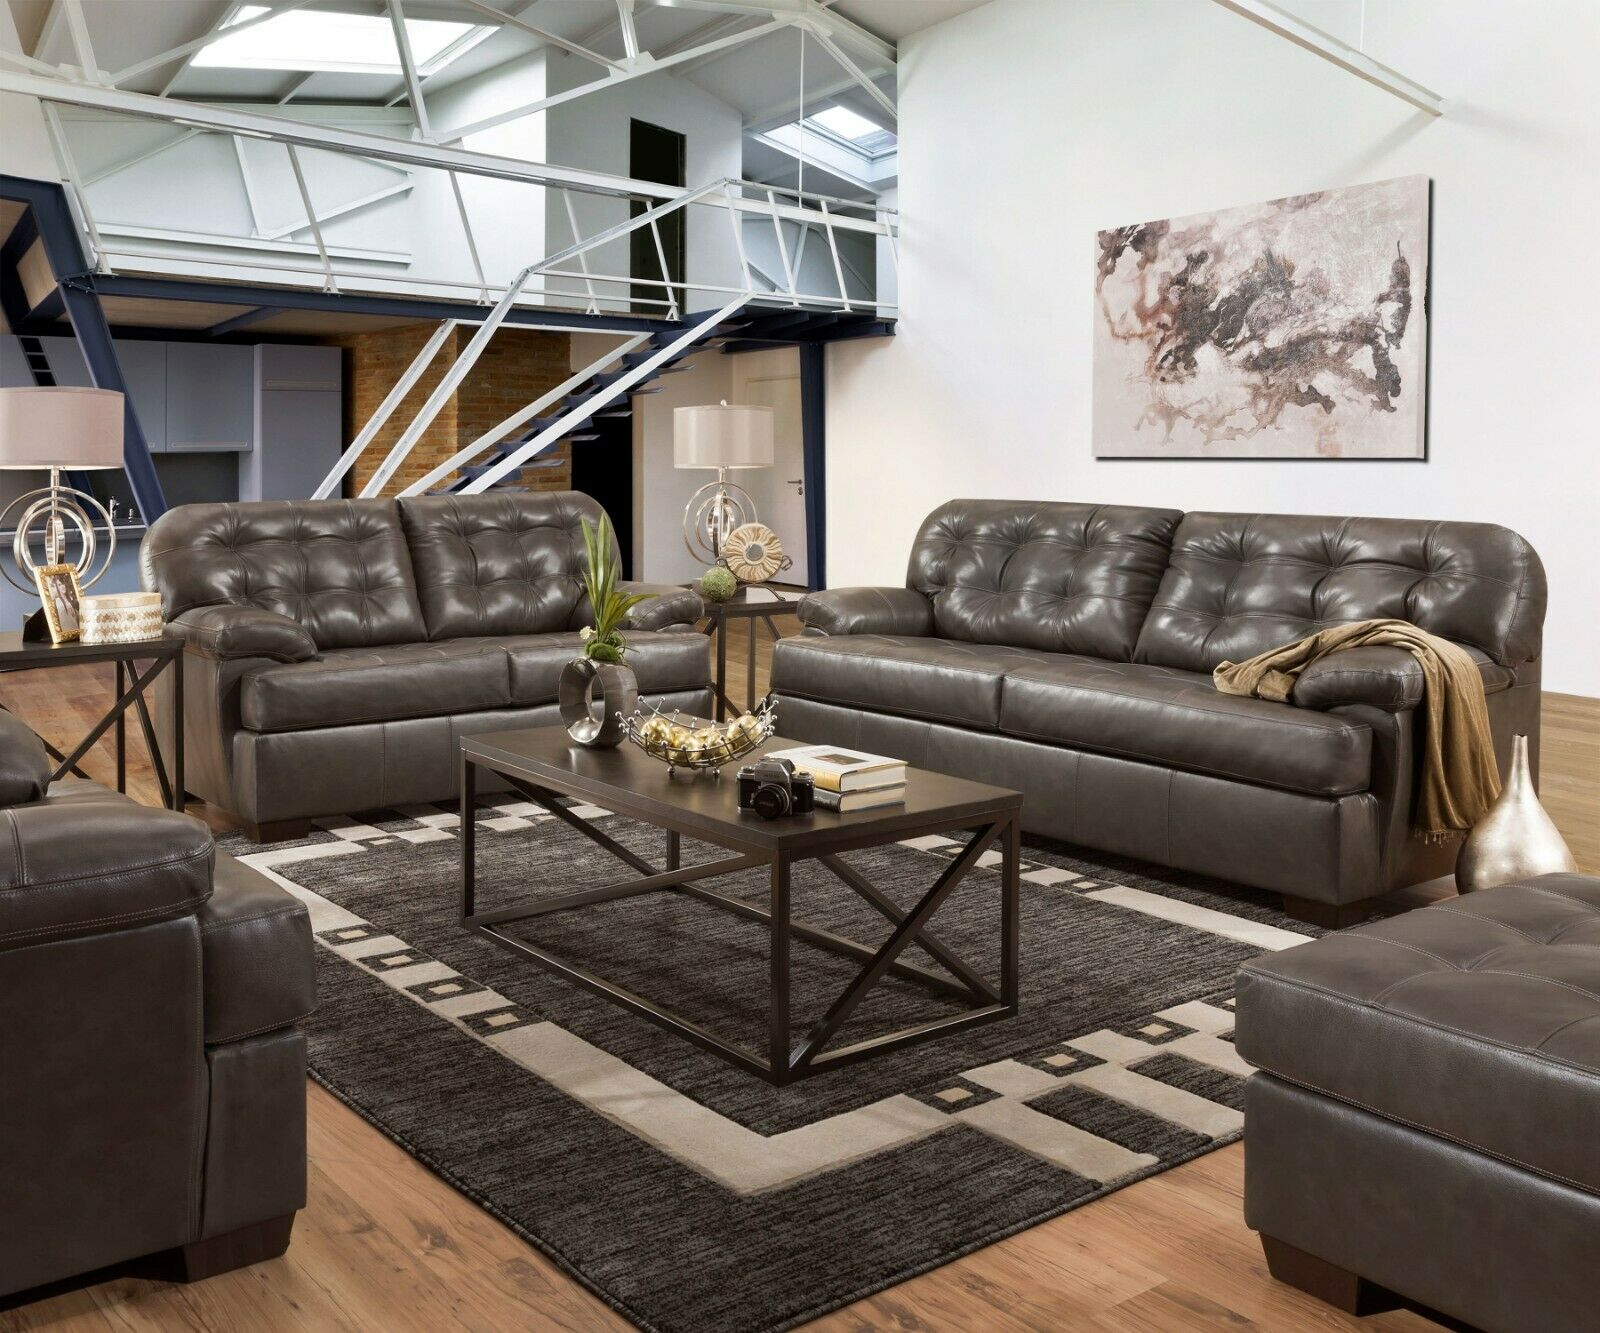 Acme Furniture Saturio Gray Top Grain Leather Sofa and Loves